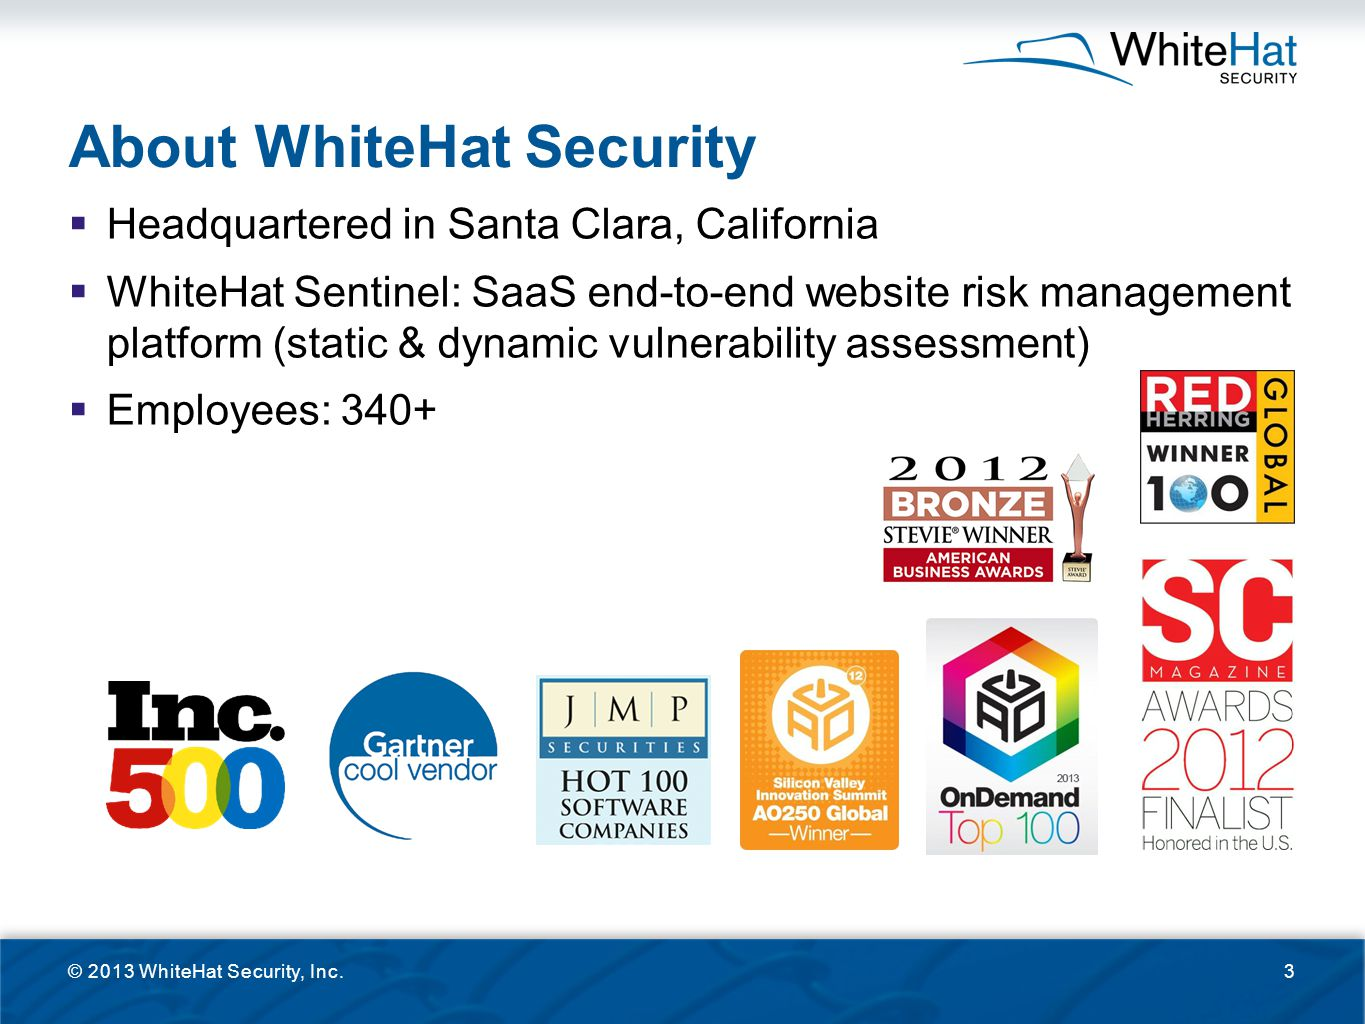 About WhiteHat Security